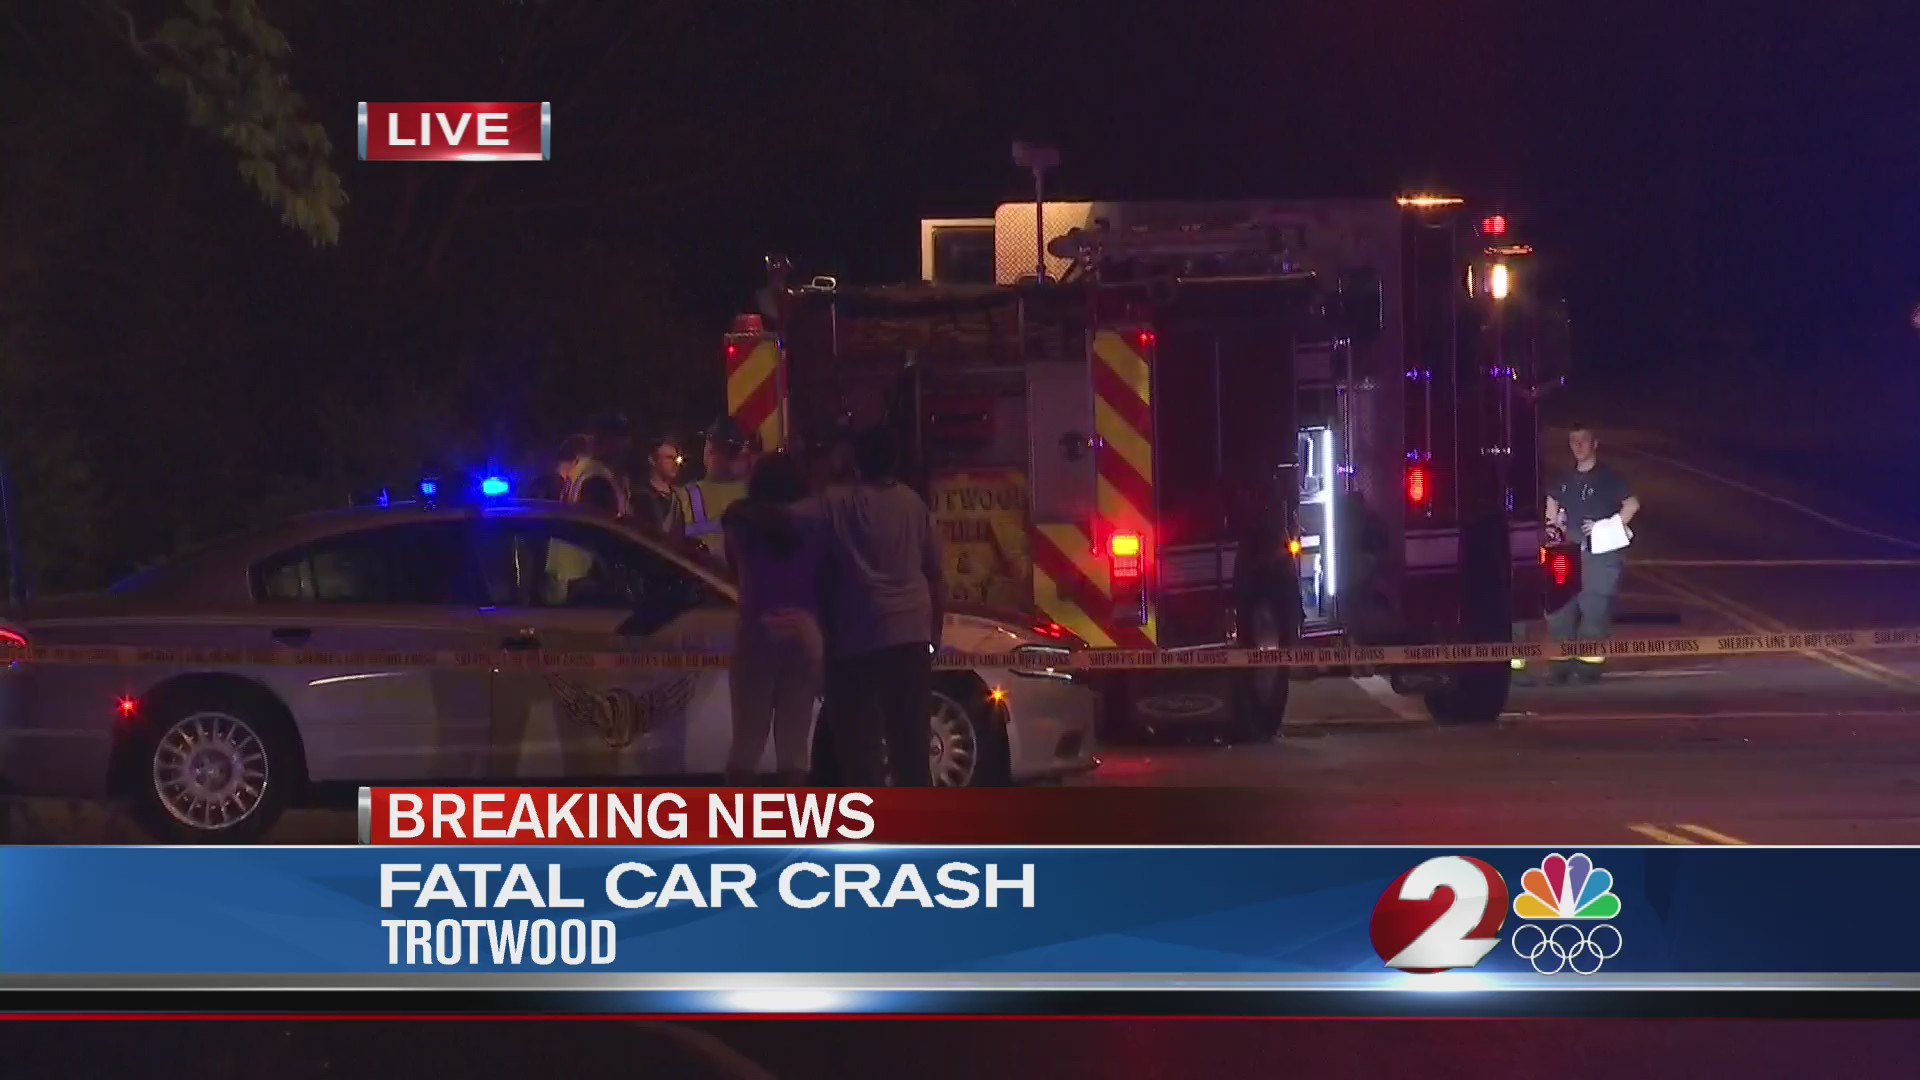 Fatal car crash in Trotwood